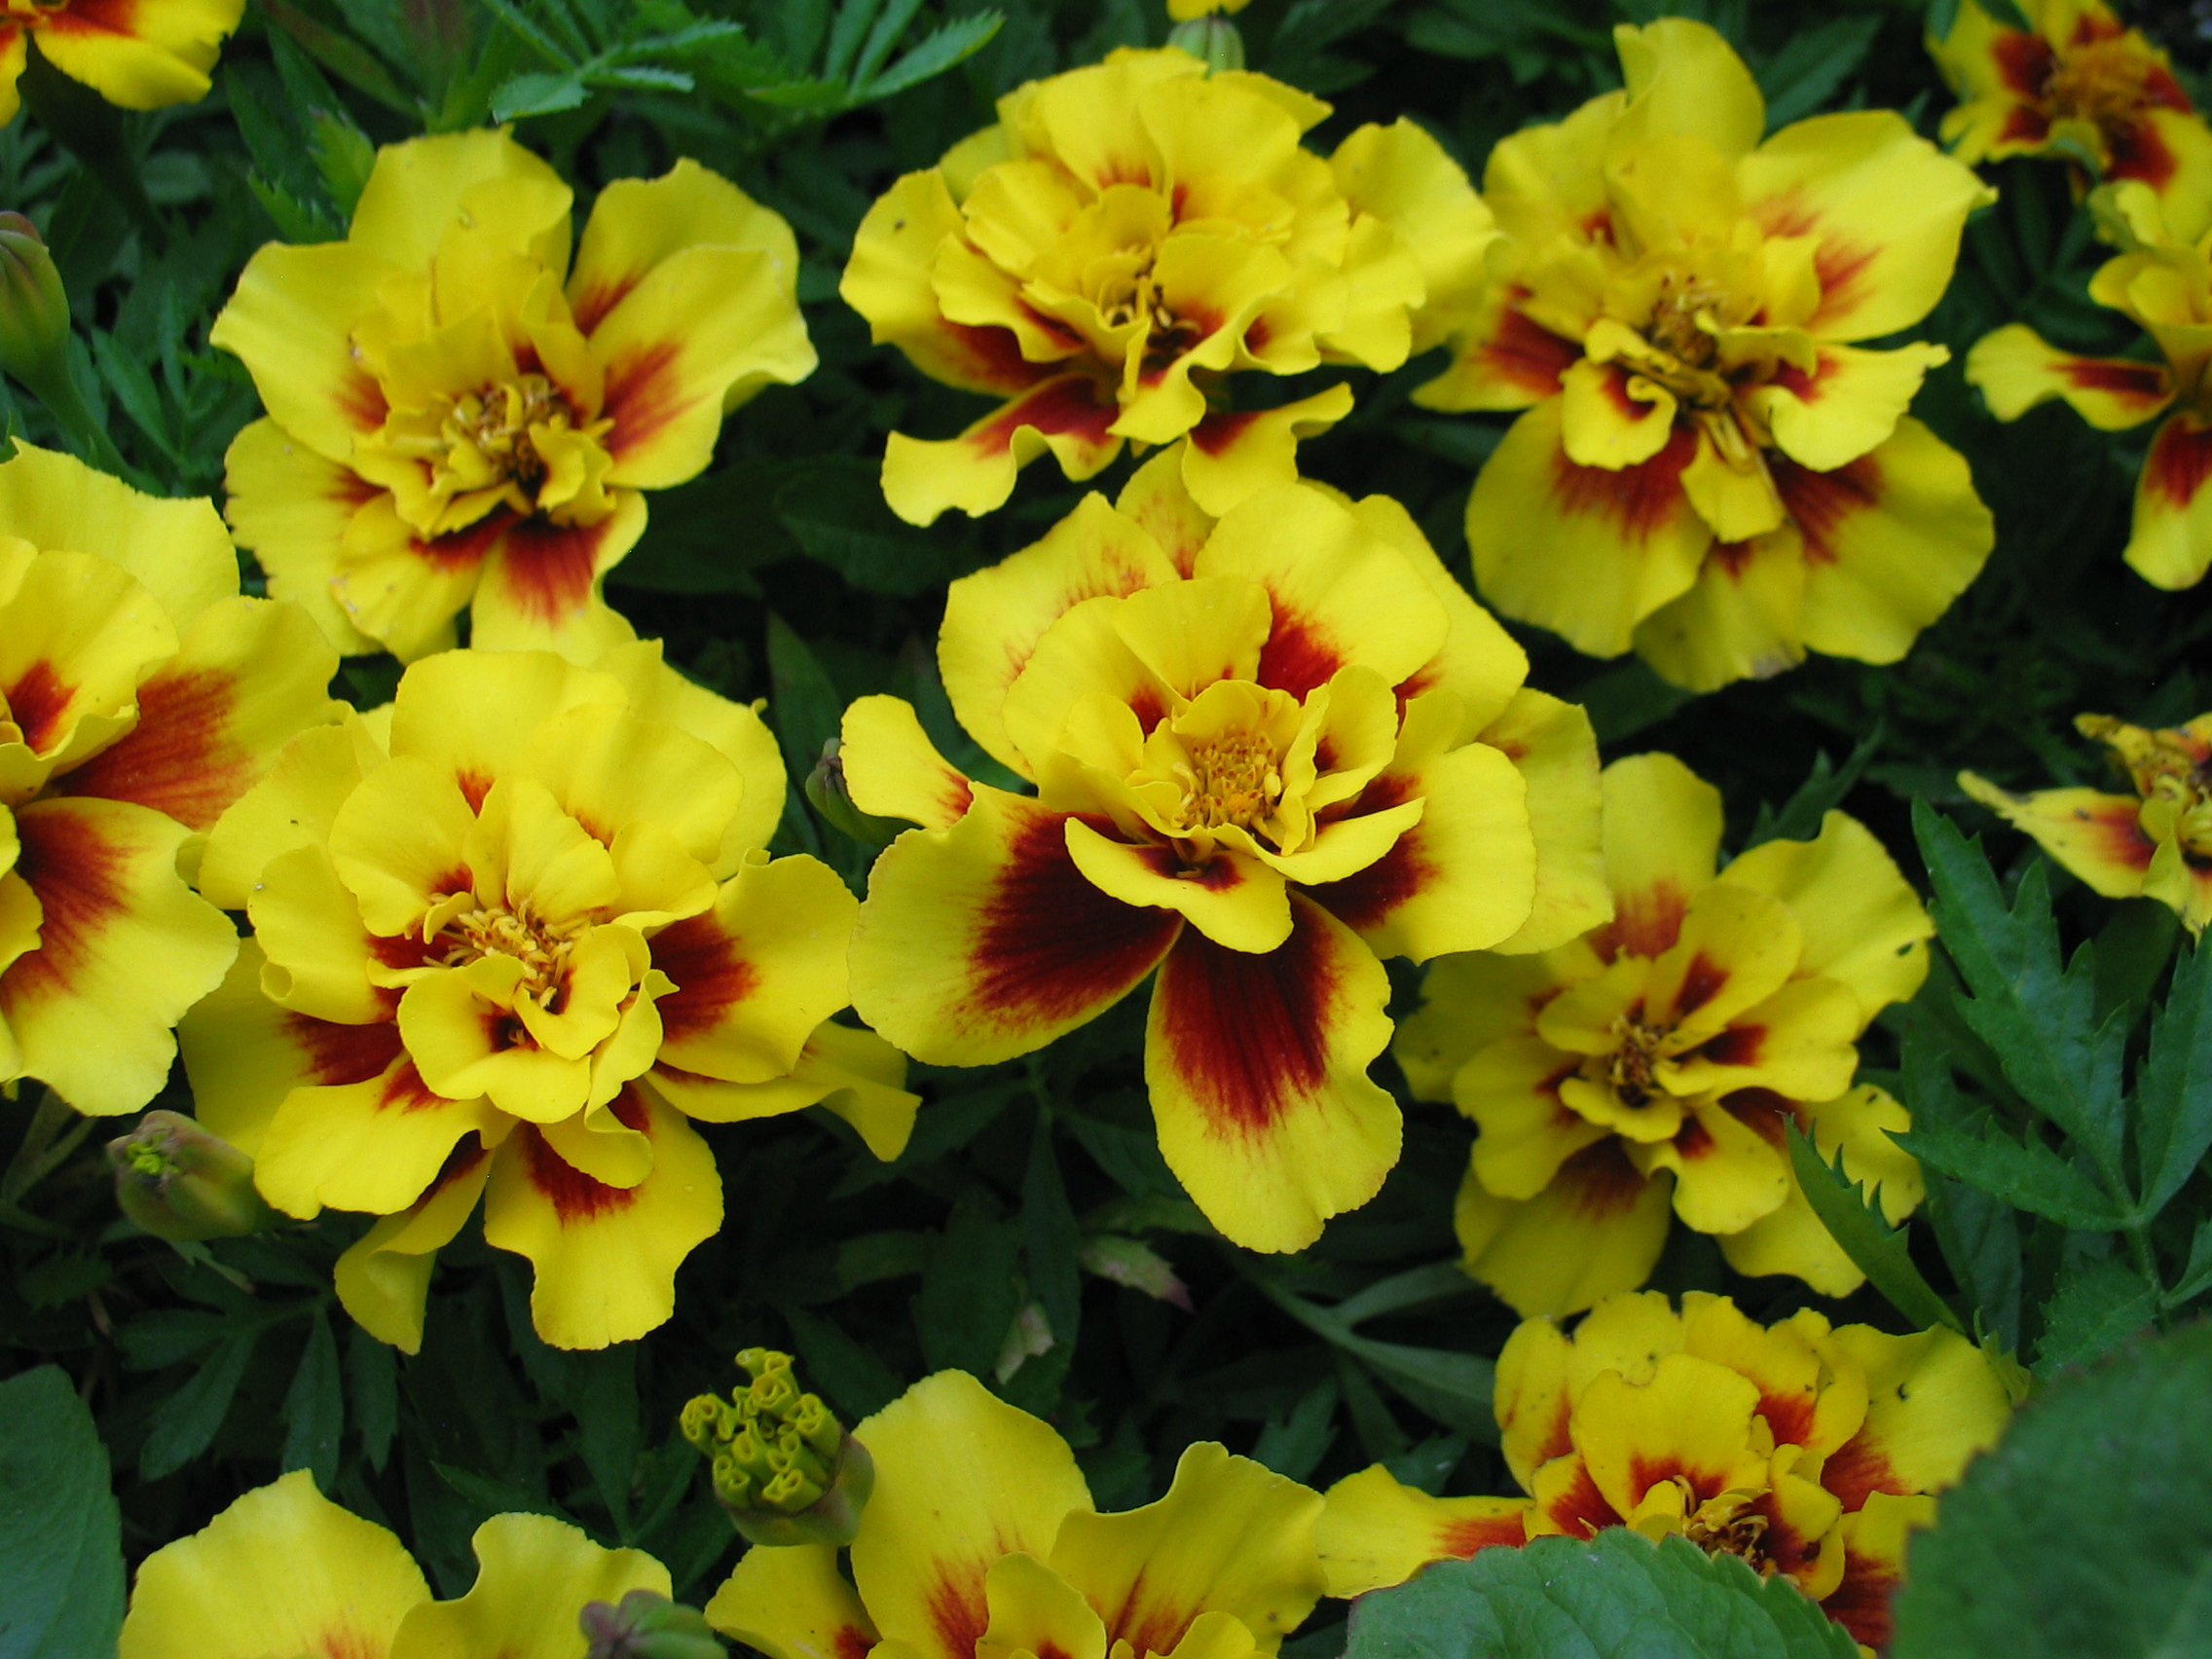 Summer Long And Are Often Used In The Vegetable Garden To Help Deter Pests We Offer A Mix Of Primarily French Varieties Full Sun Good Cut Flower